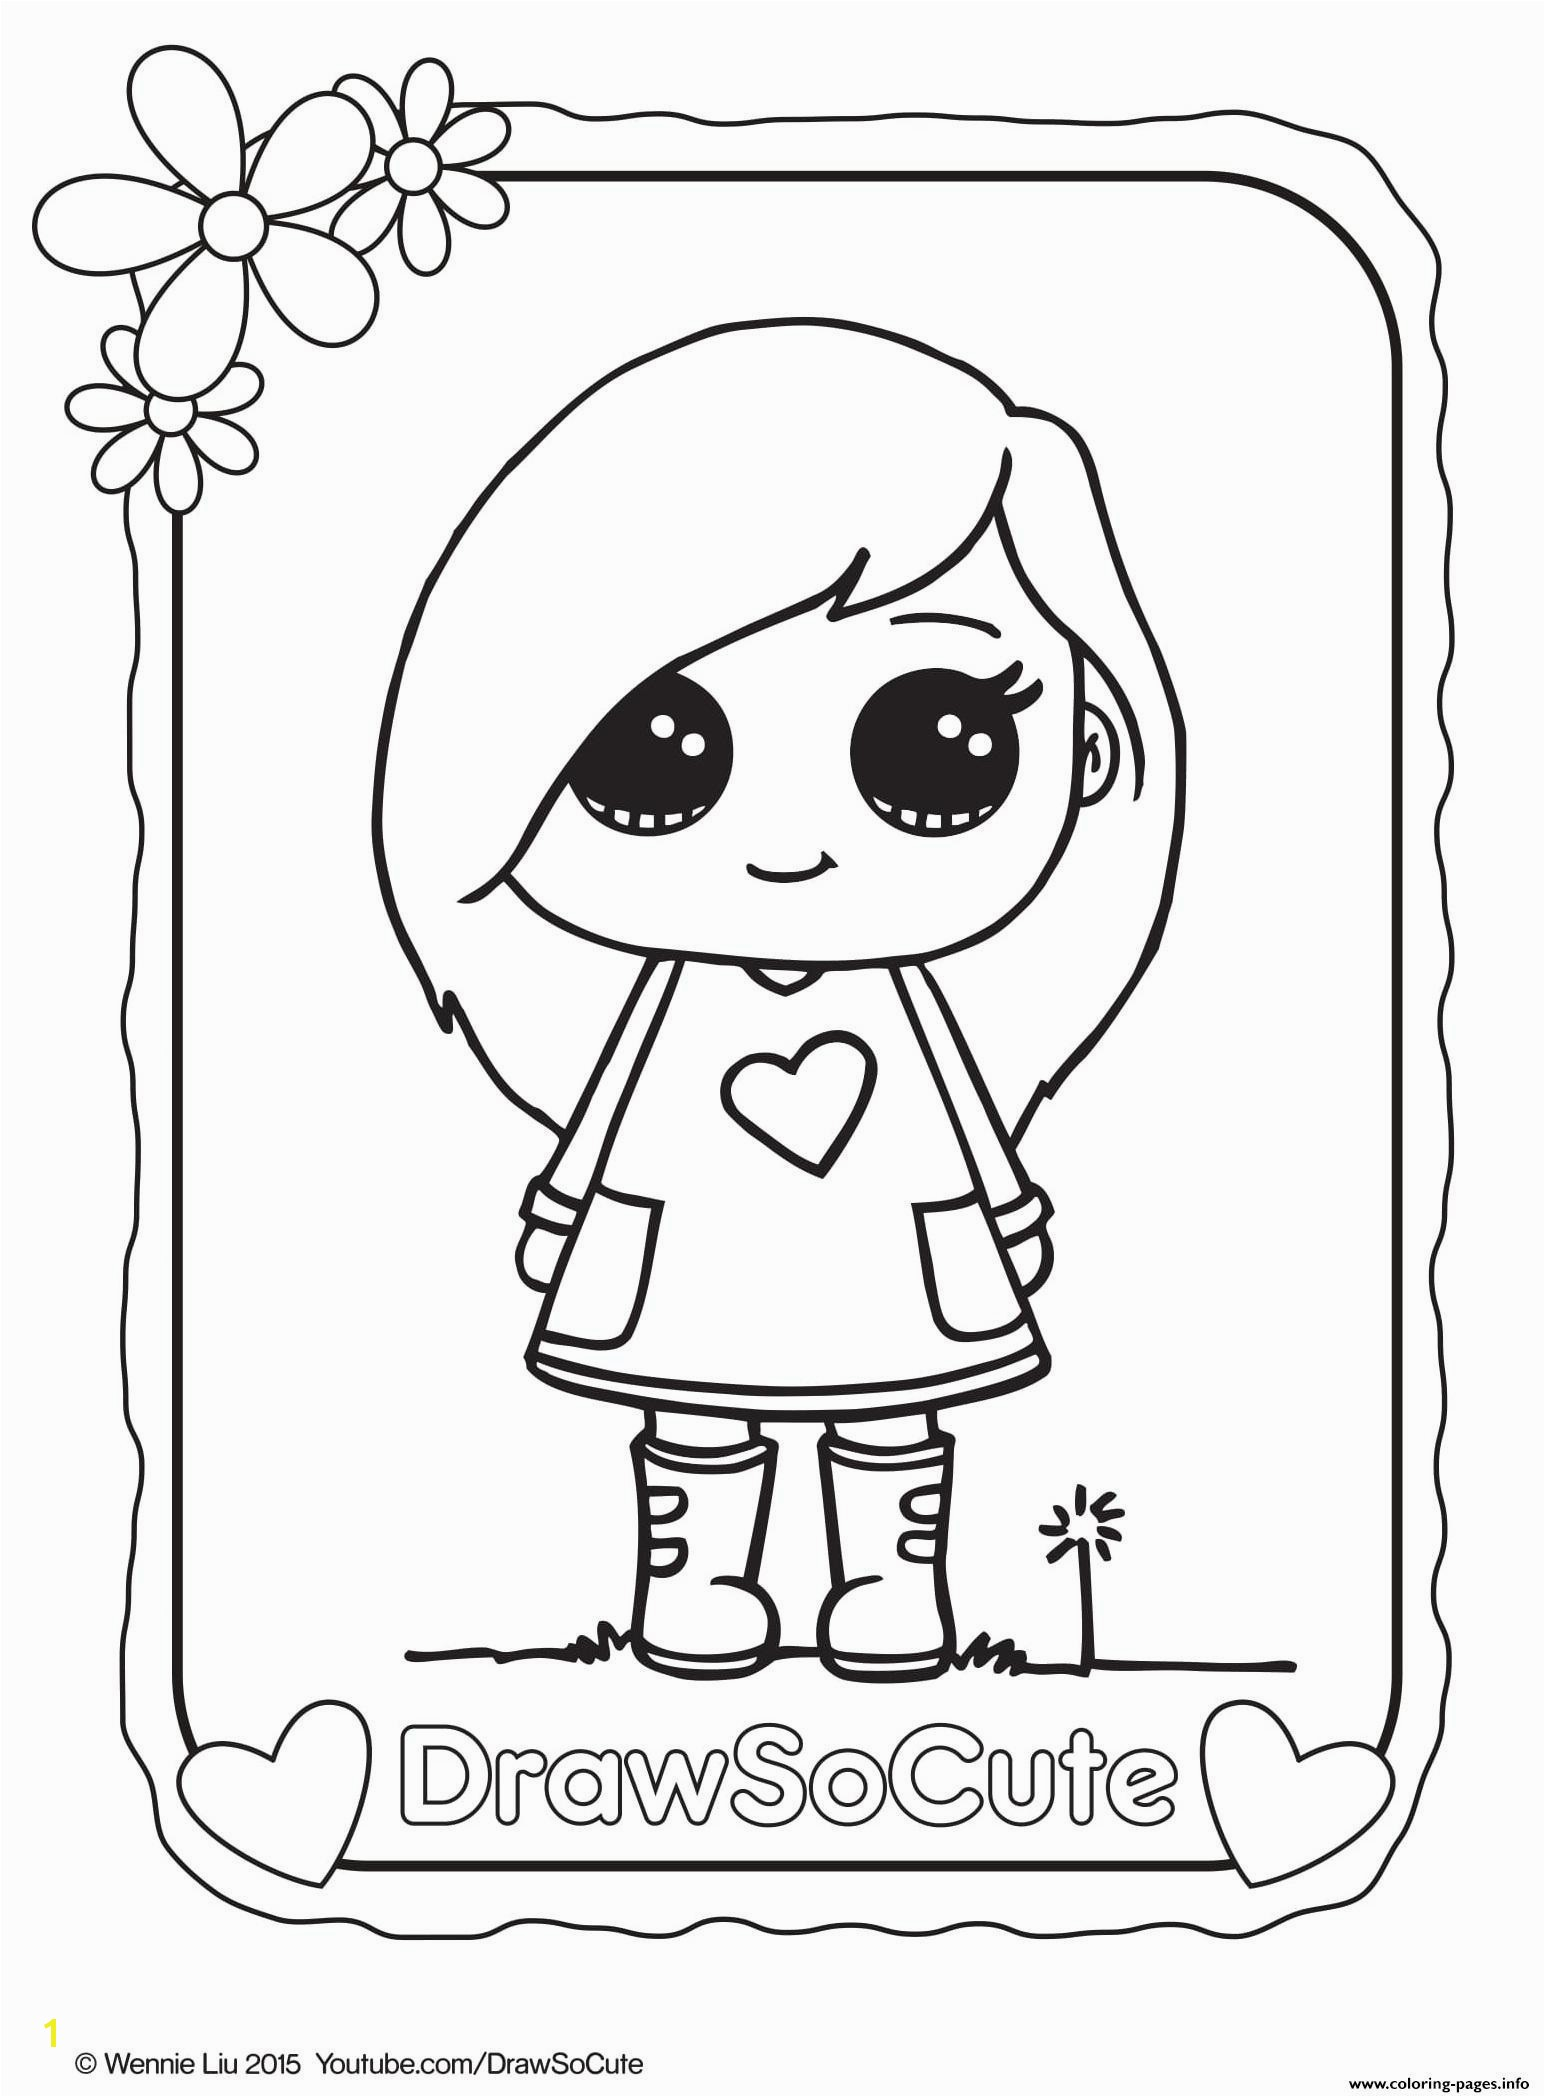 Www Drawsocute Com Coloring Pages Pages Best Bookfo New sophie Draw so Cute Coloring